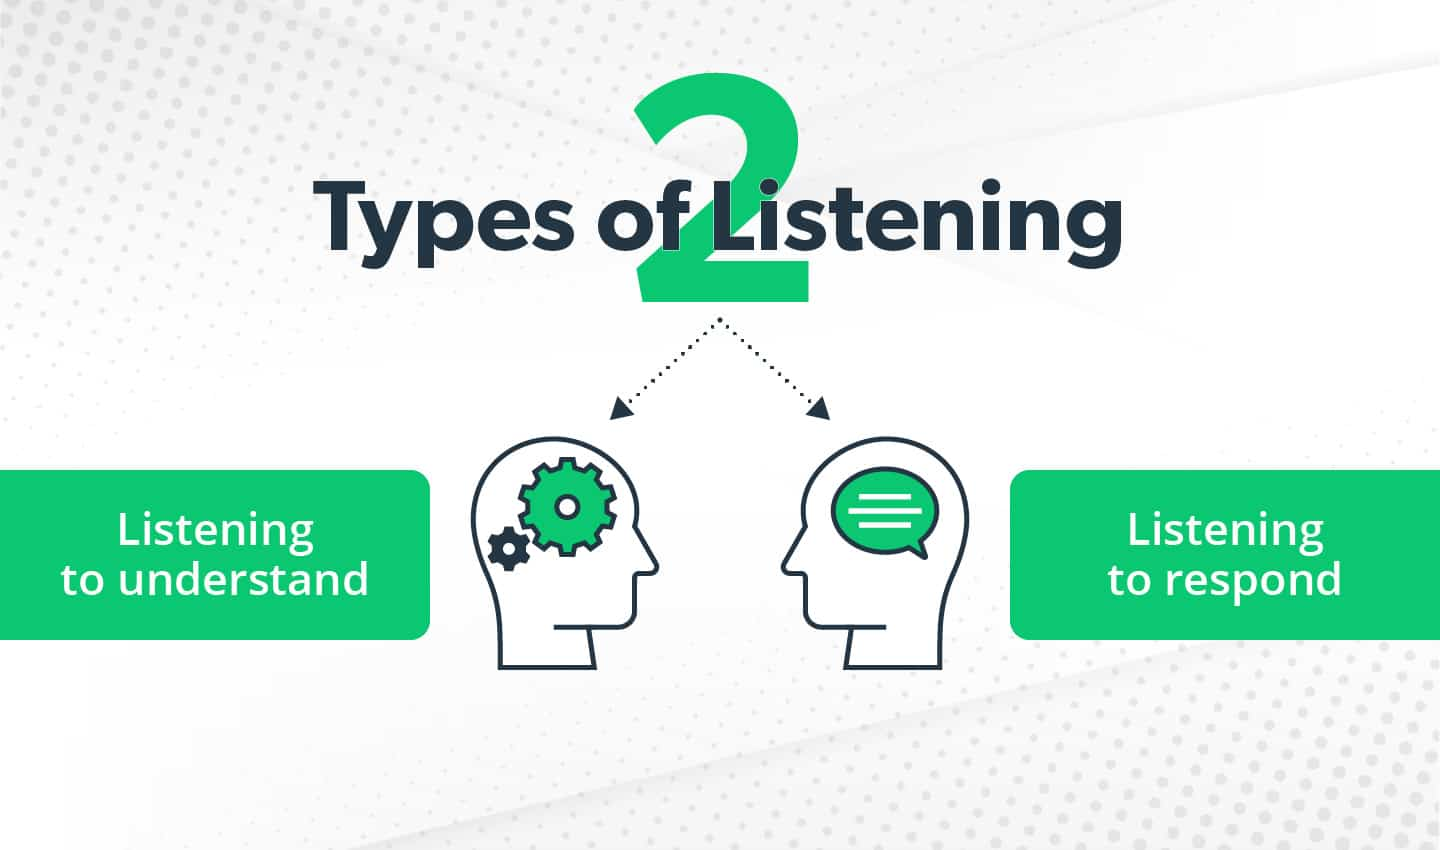 Two types of listening: Listening to understand and listening to respond